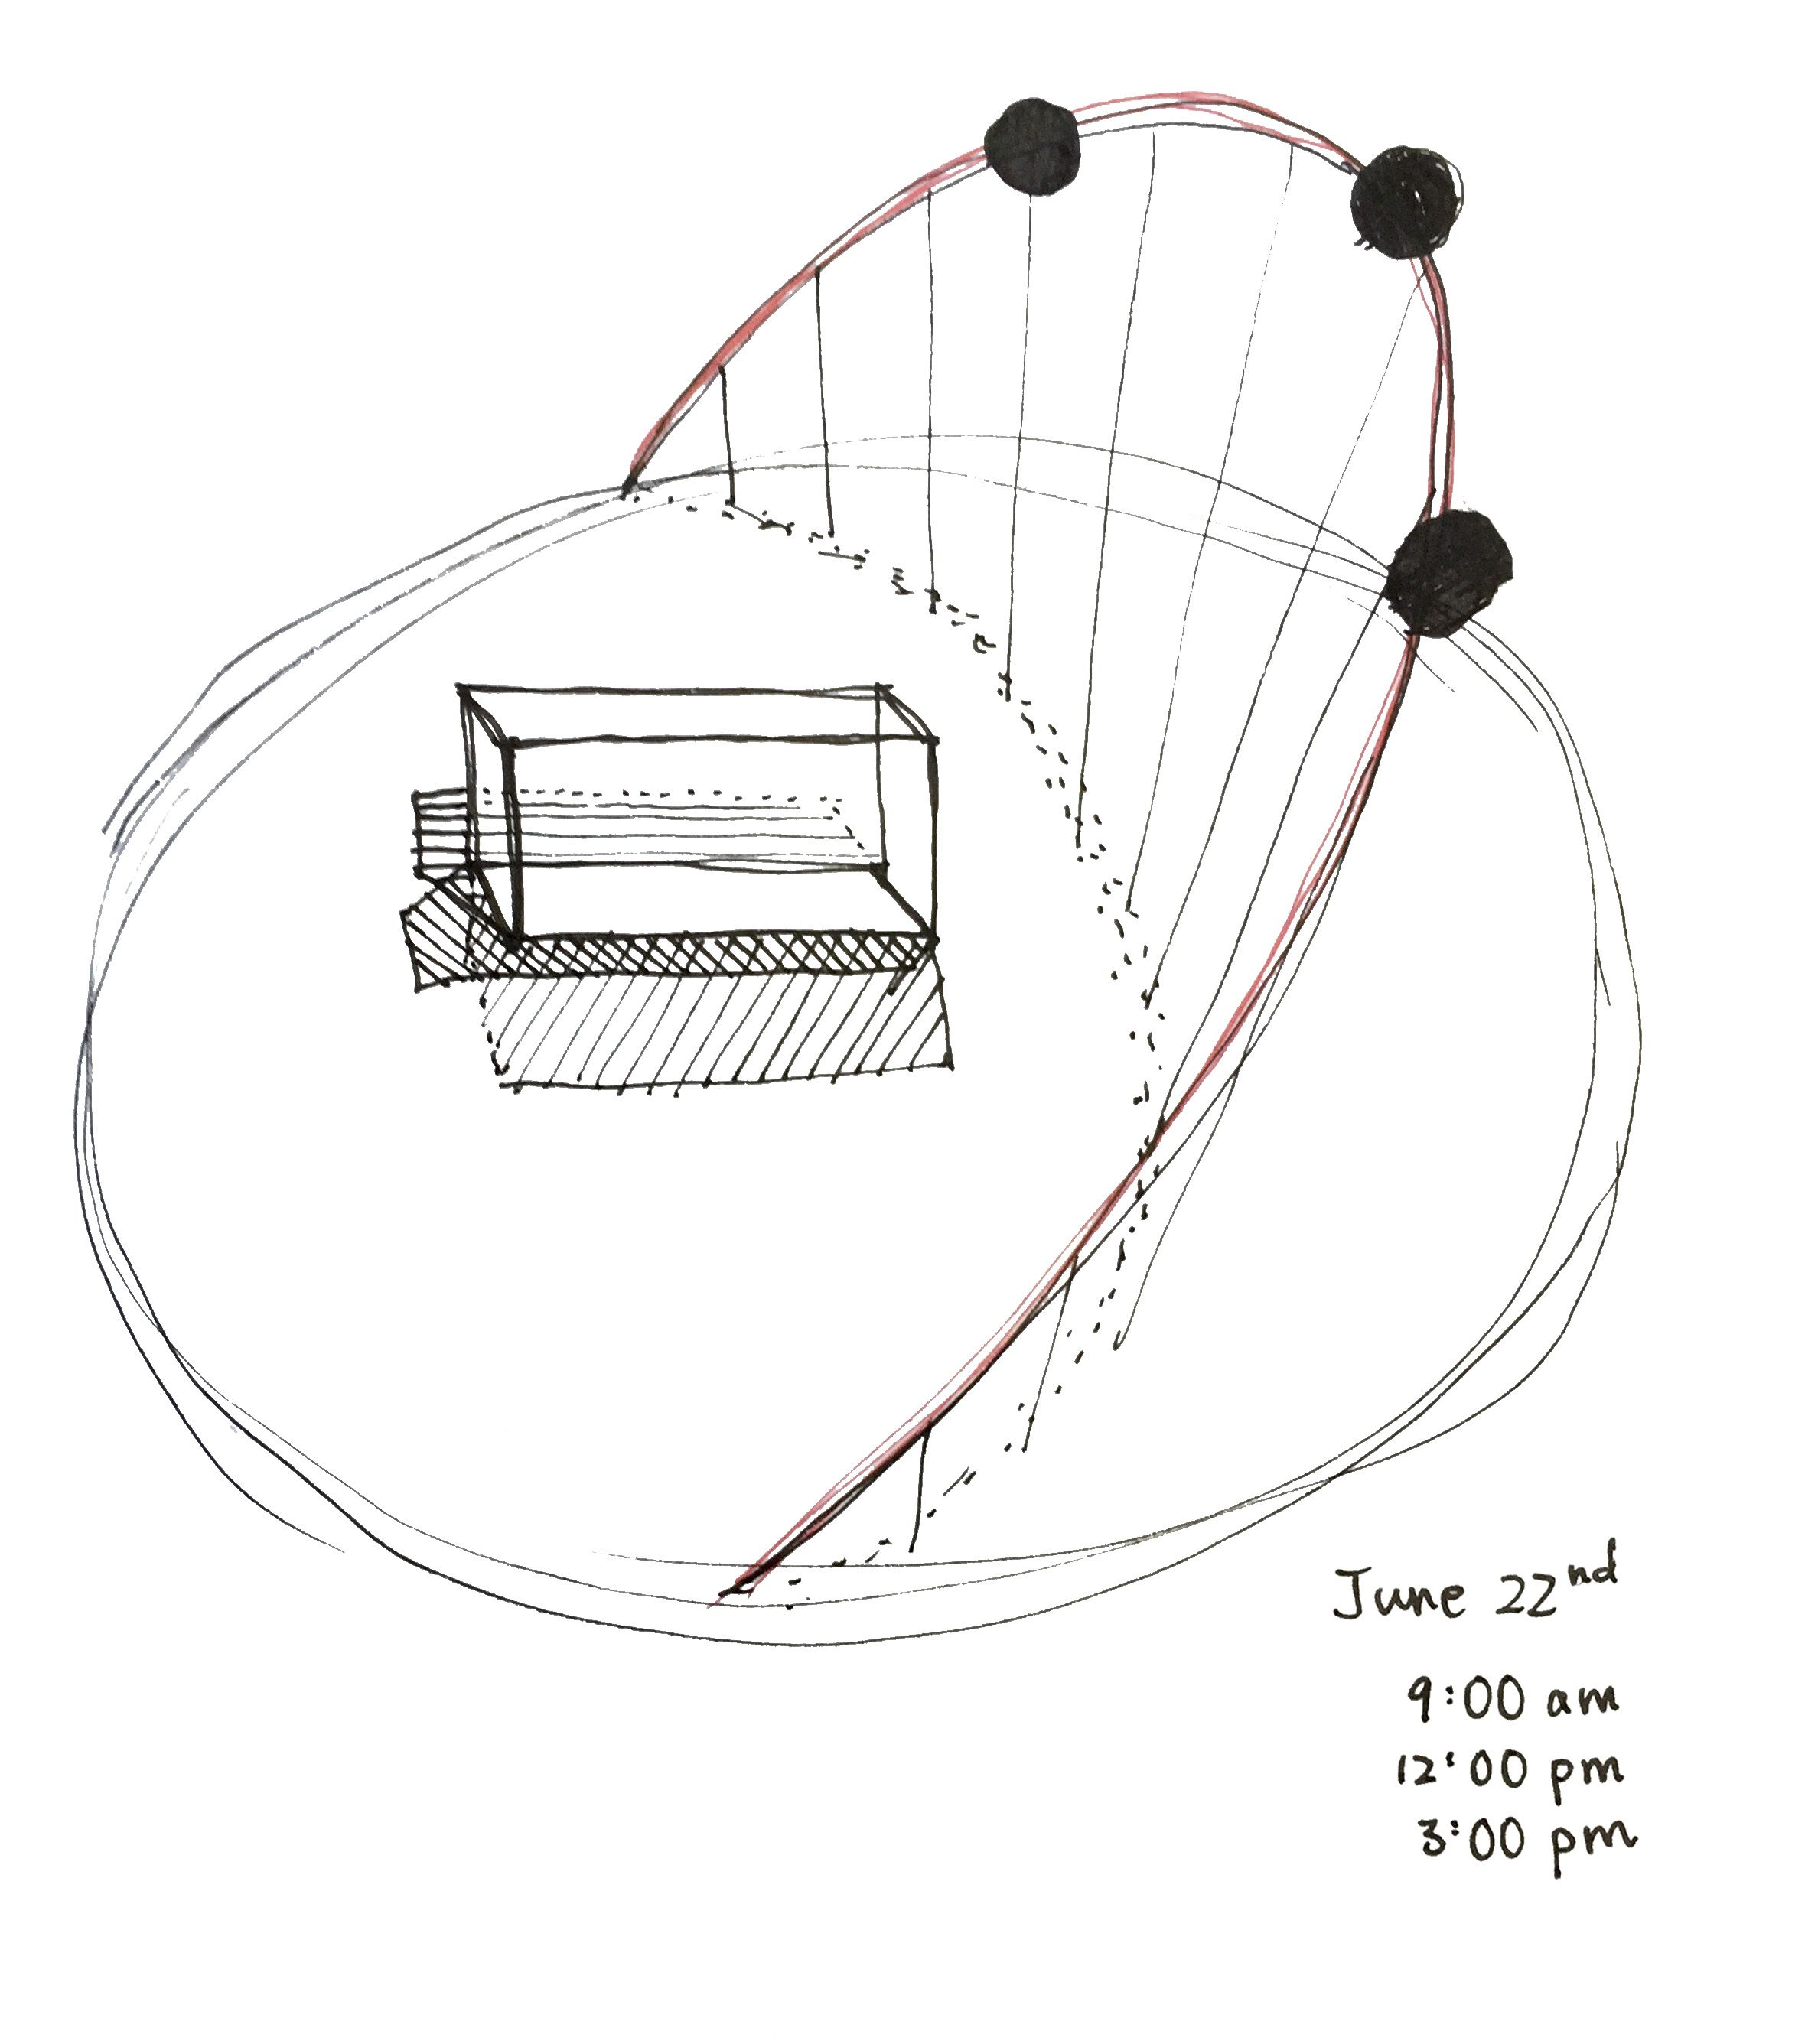 hight resolution of university of versailles science library diagram of sun path in june kellyli 48105 s15